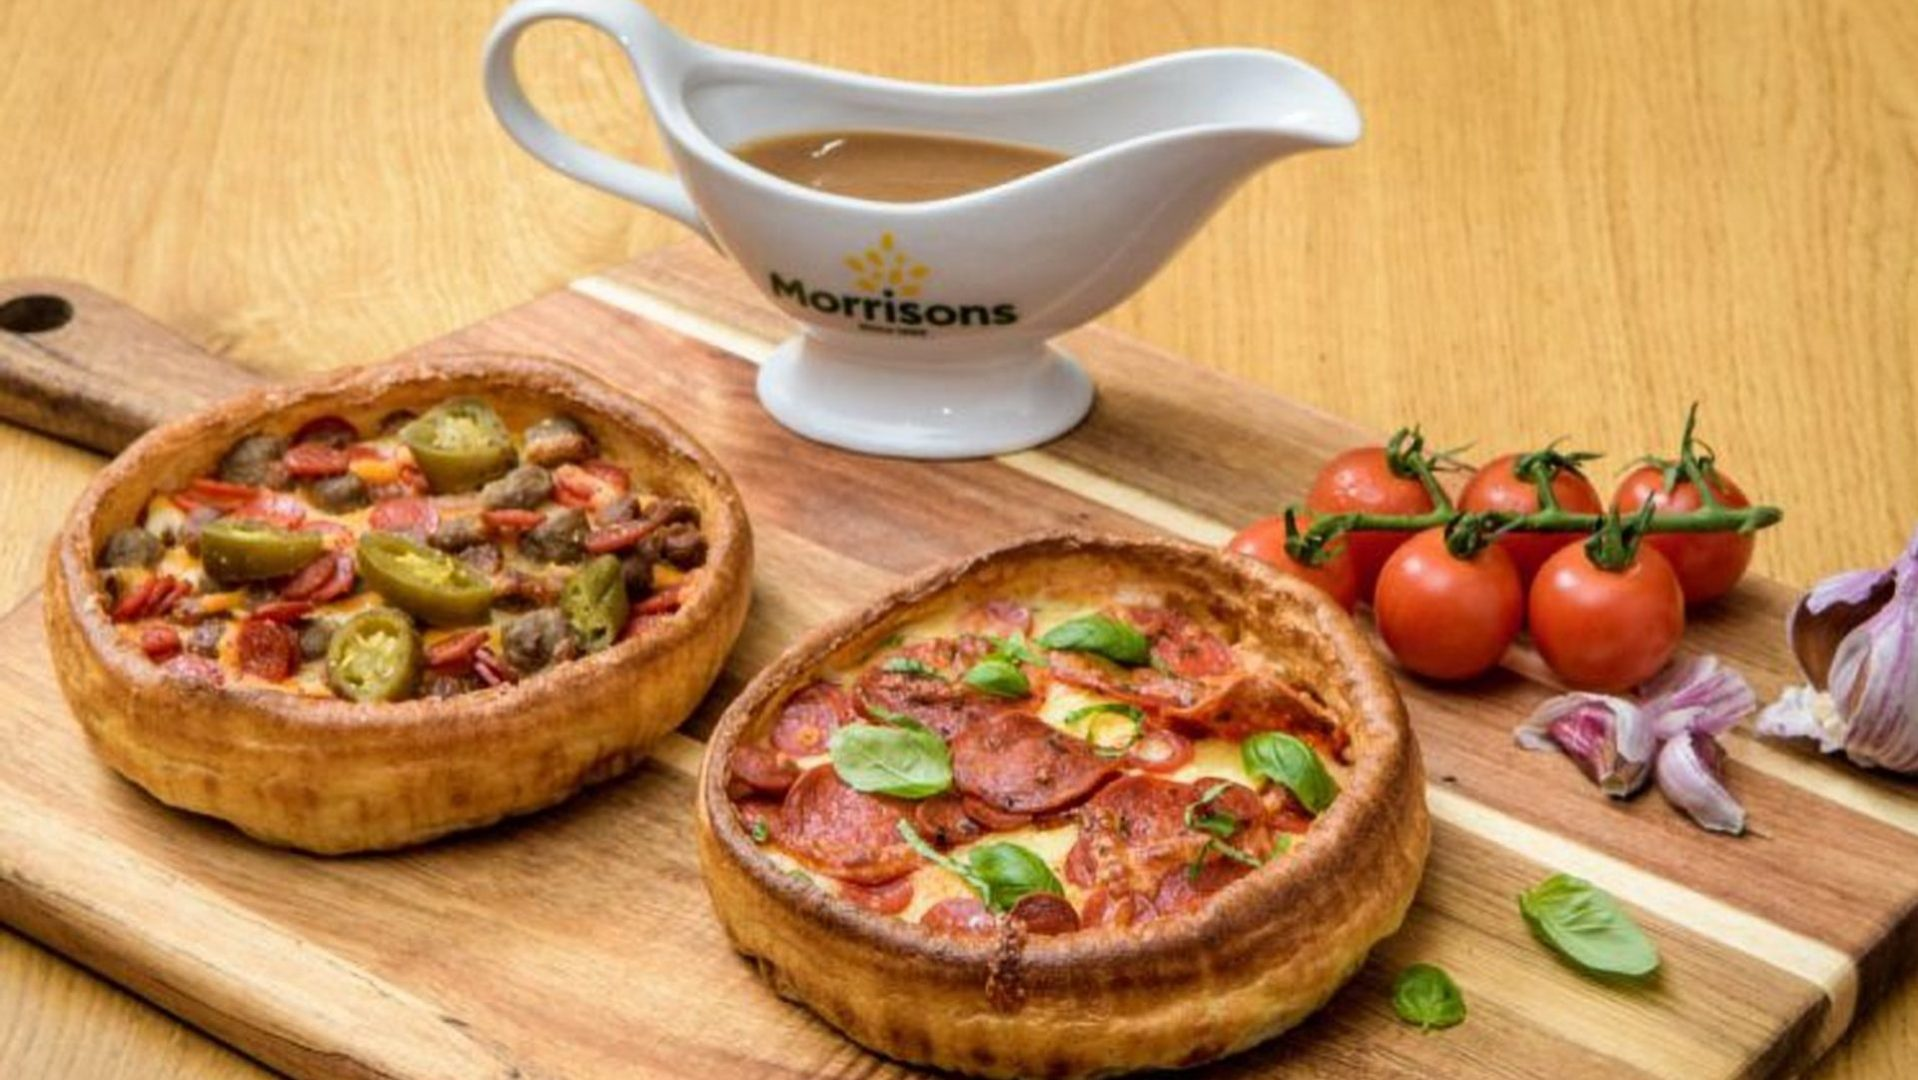 Morrisons Yorkshire Pudding Pizza.